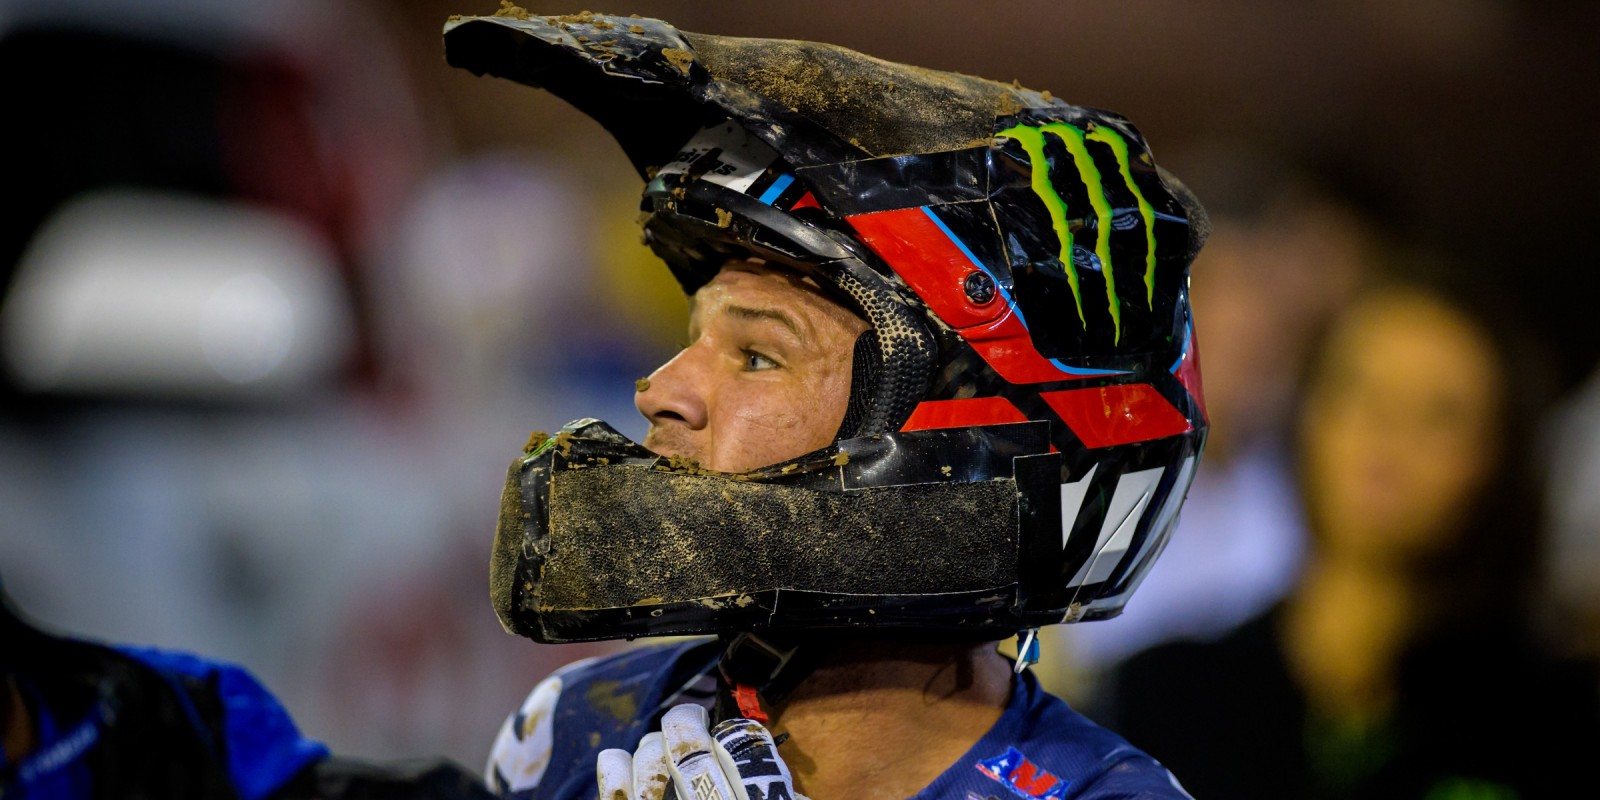 Chad Reed during the 2016 Supercross season in Las Vegas